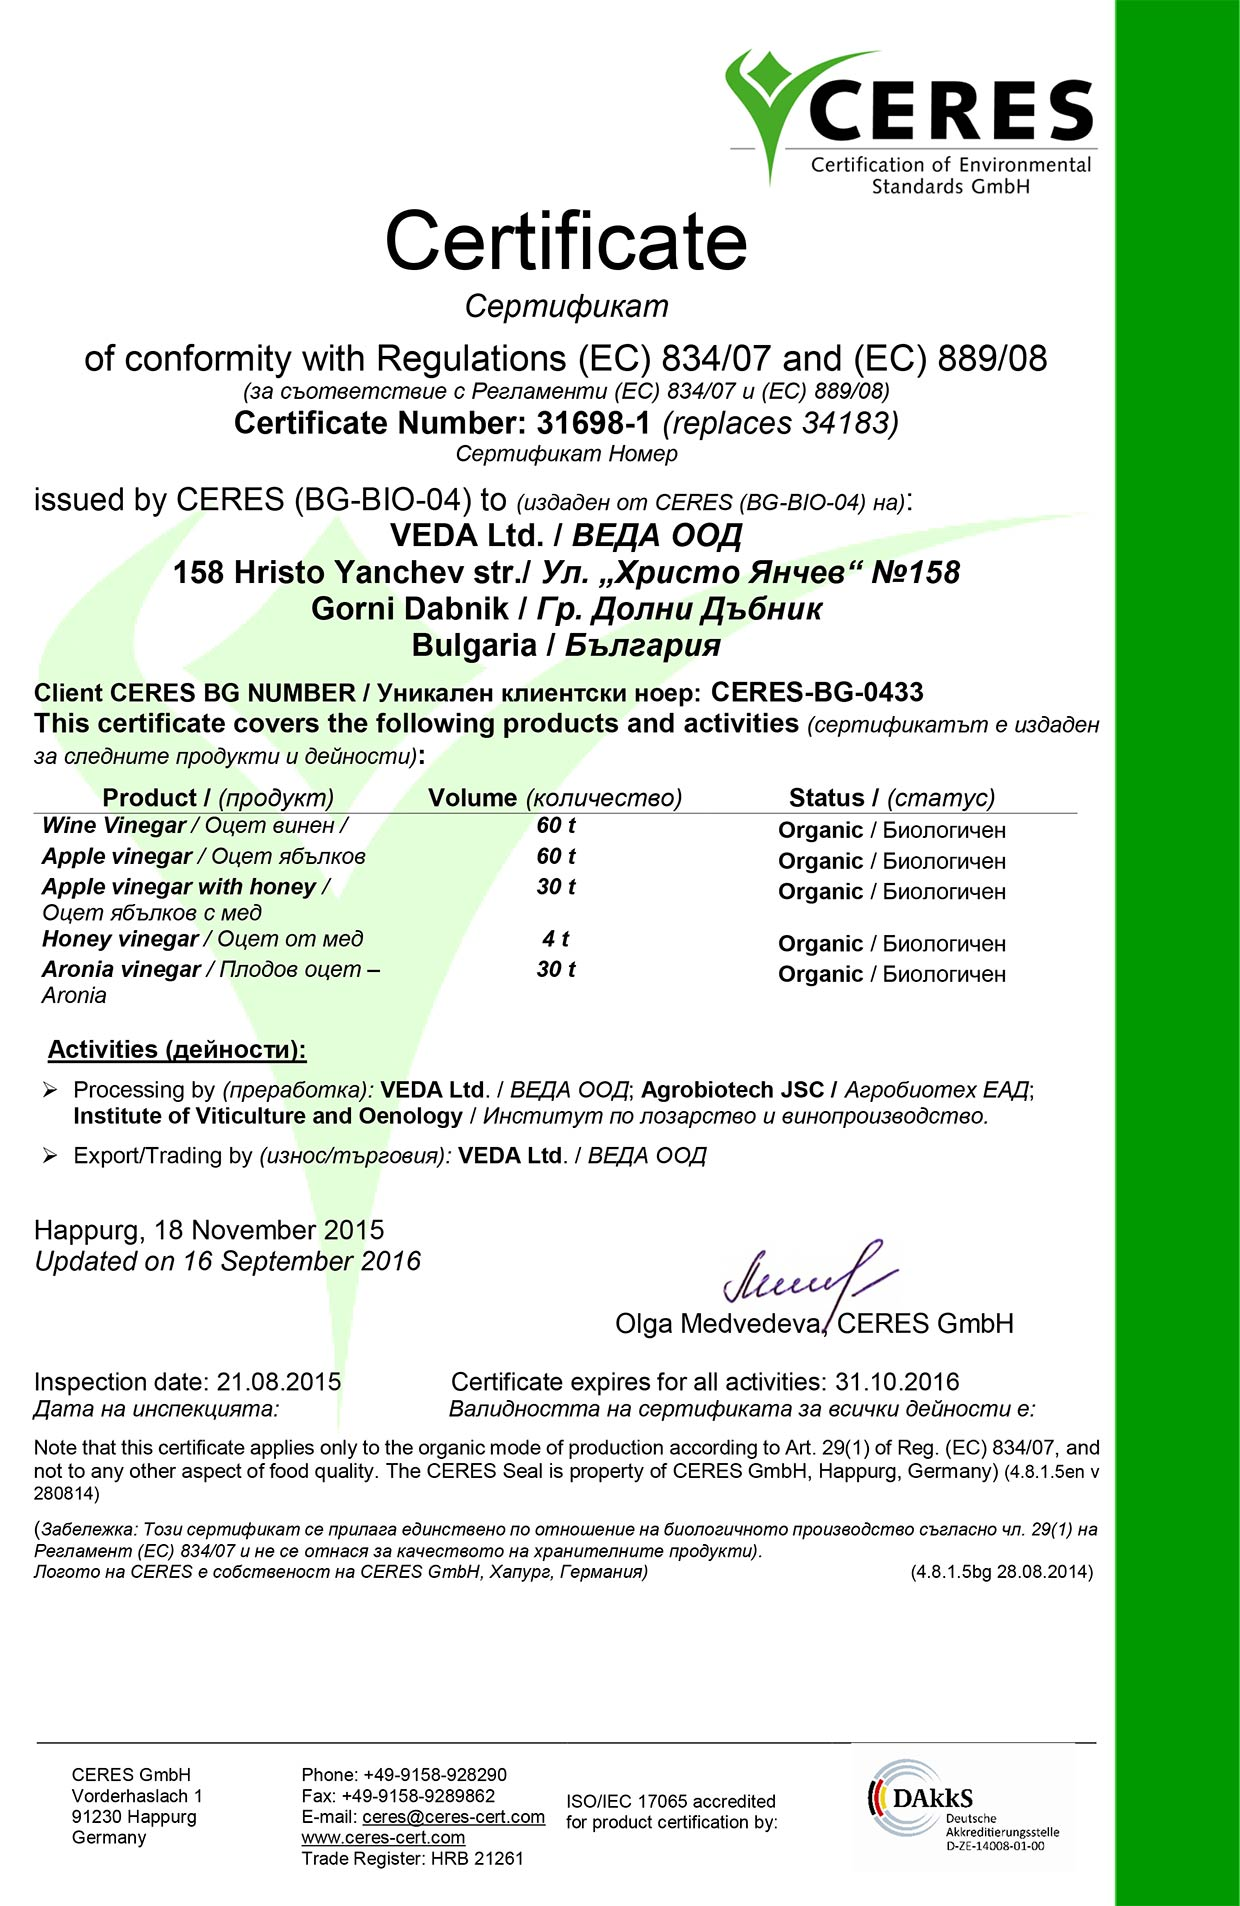 certifikation of environmental standards - ceres-2016